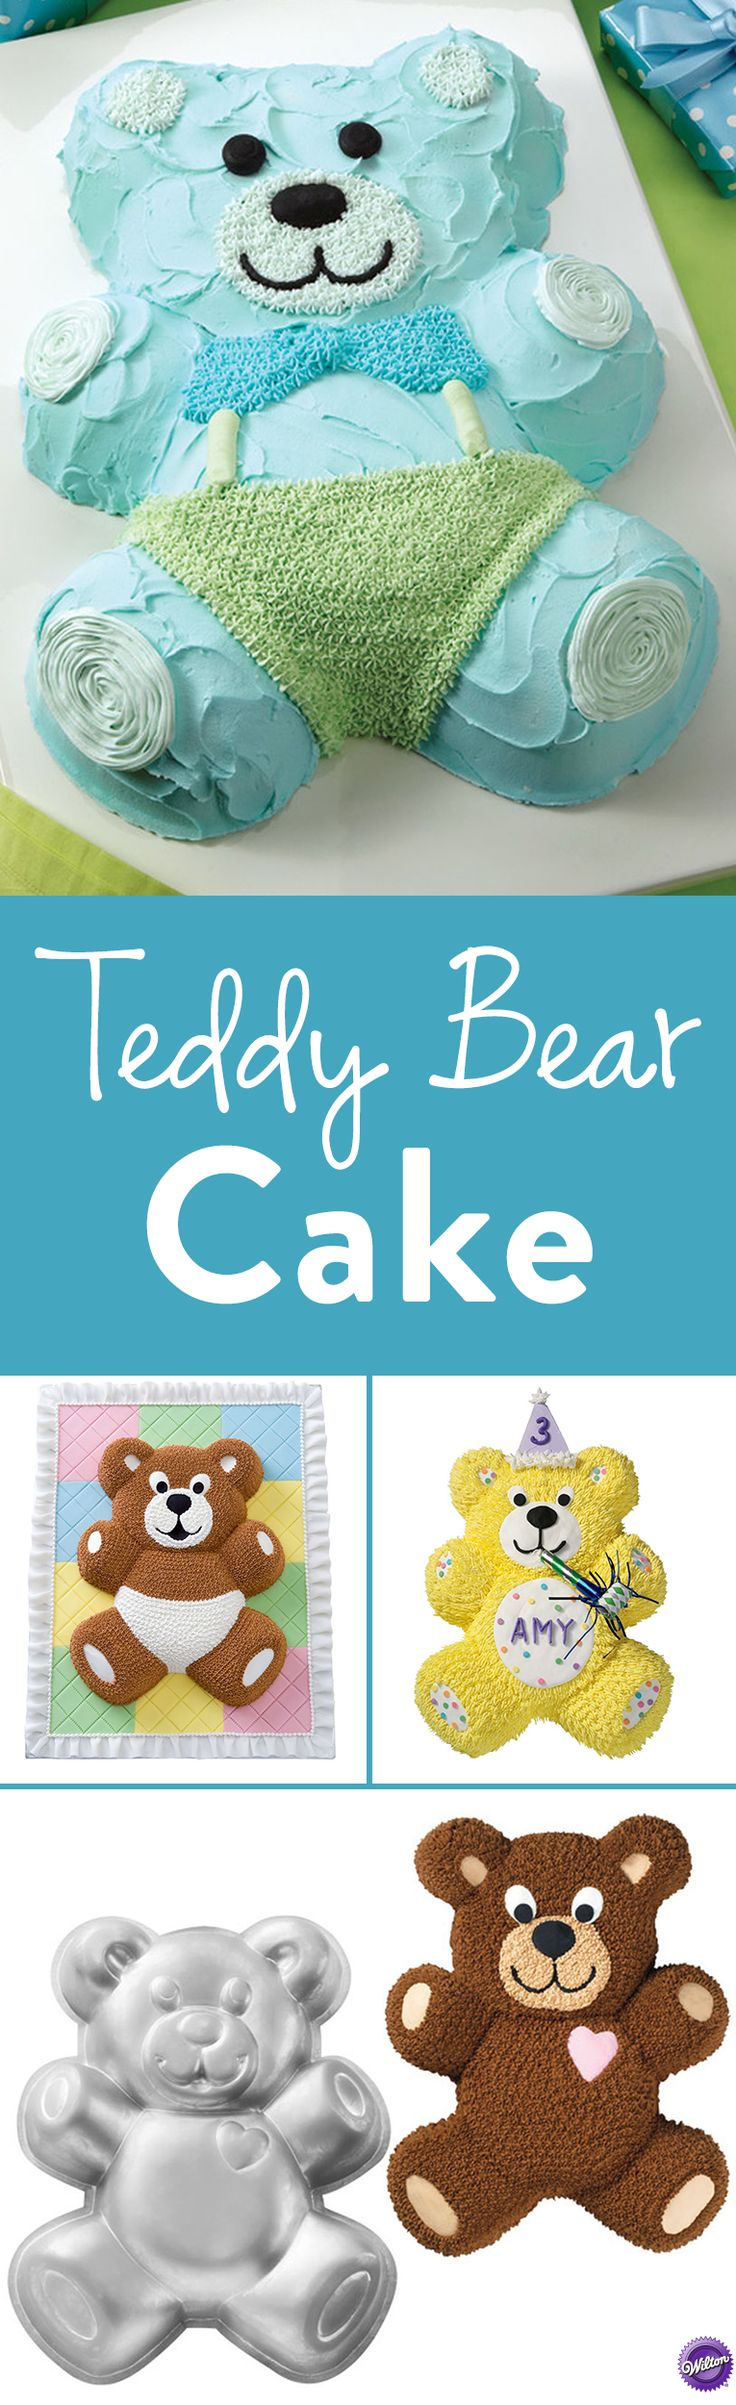 How to Make Teddy Bear Cakes - Everybody just loves teddy bears. This cutie will be busy all year-round with birthdays, school parties, baby showers and baby's first birthday. No time for hibernating with all these fun events on the agenda. Use the Wilton Teddy Bear Pan to easily mold cake and decorate as a bear.